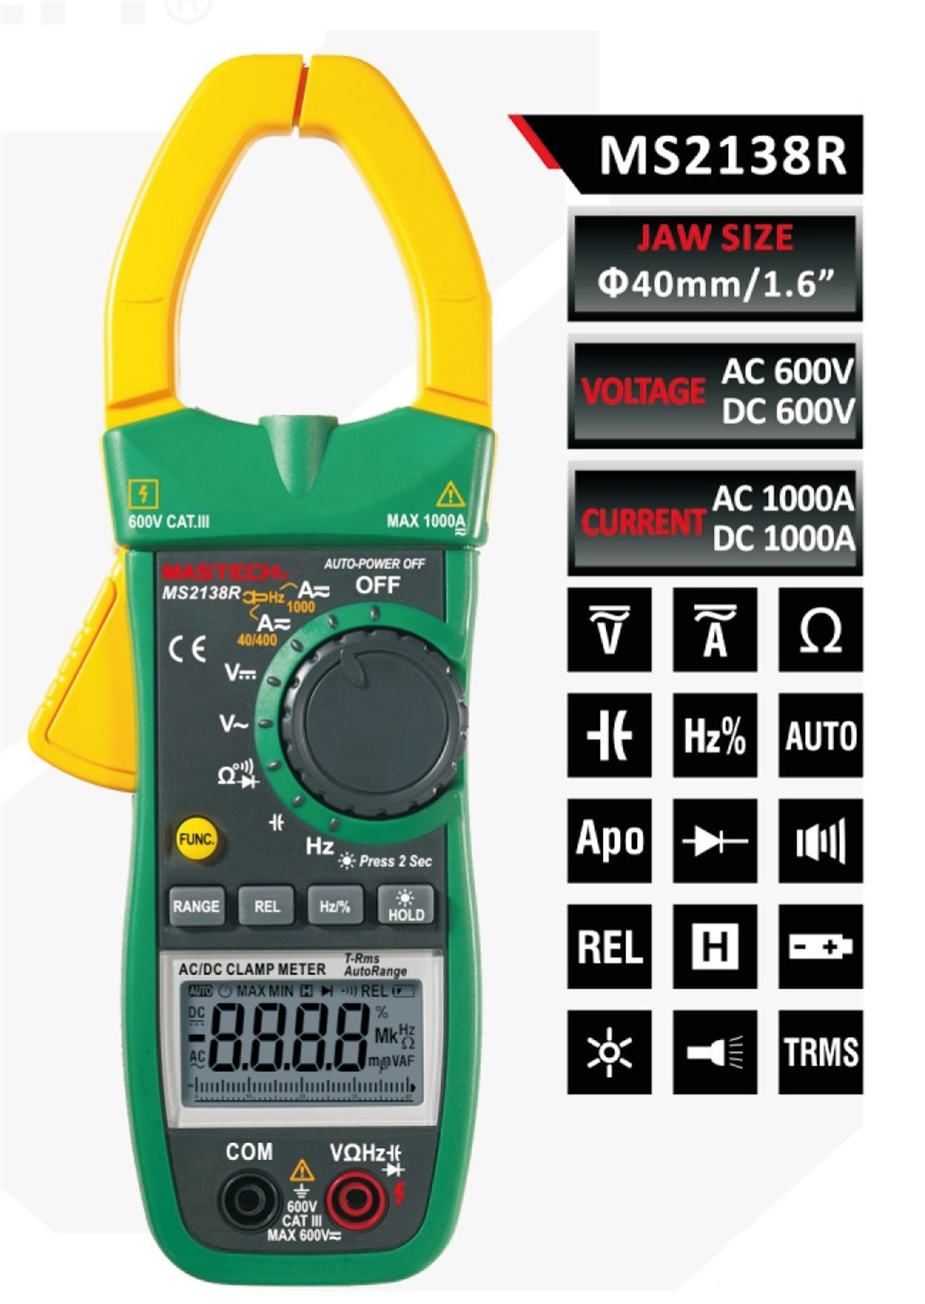 Selling MASTECH MS2138R 4000 Counts Digital AC DC Clamp Meter Multimeter Voltage Current Capacitance Resistance Tester